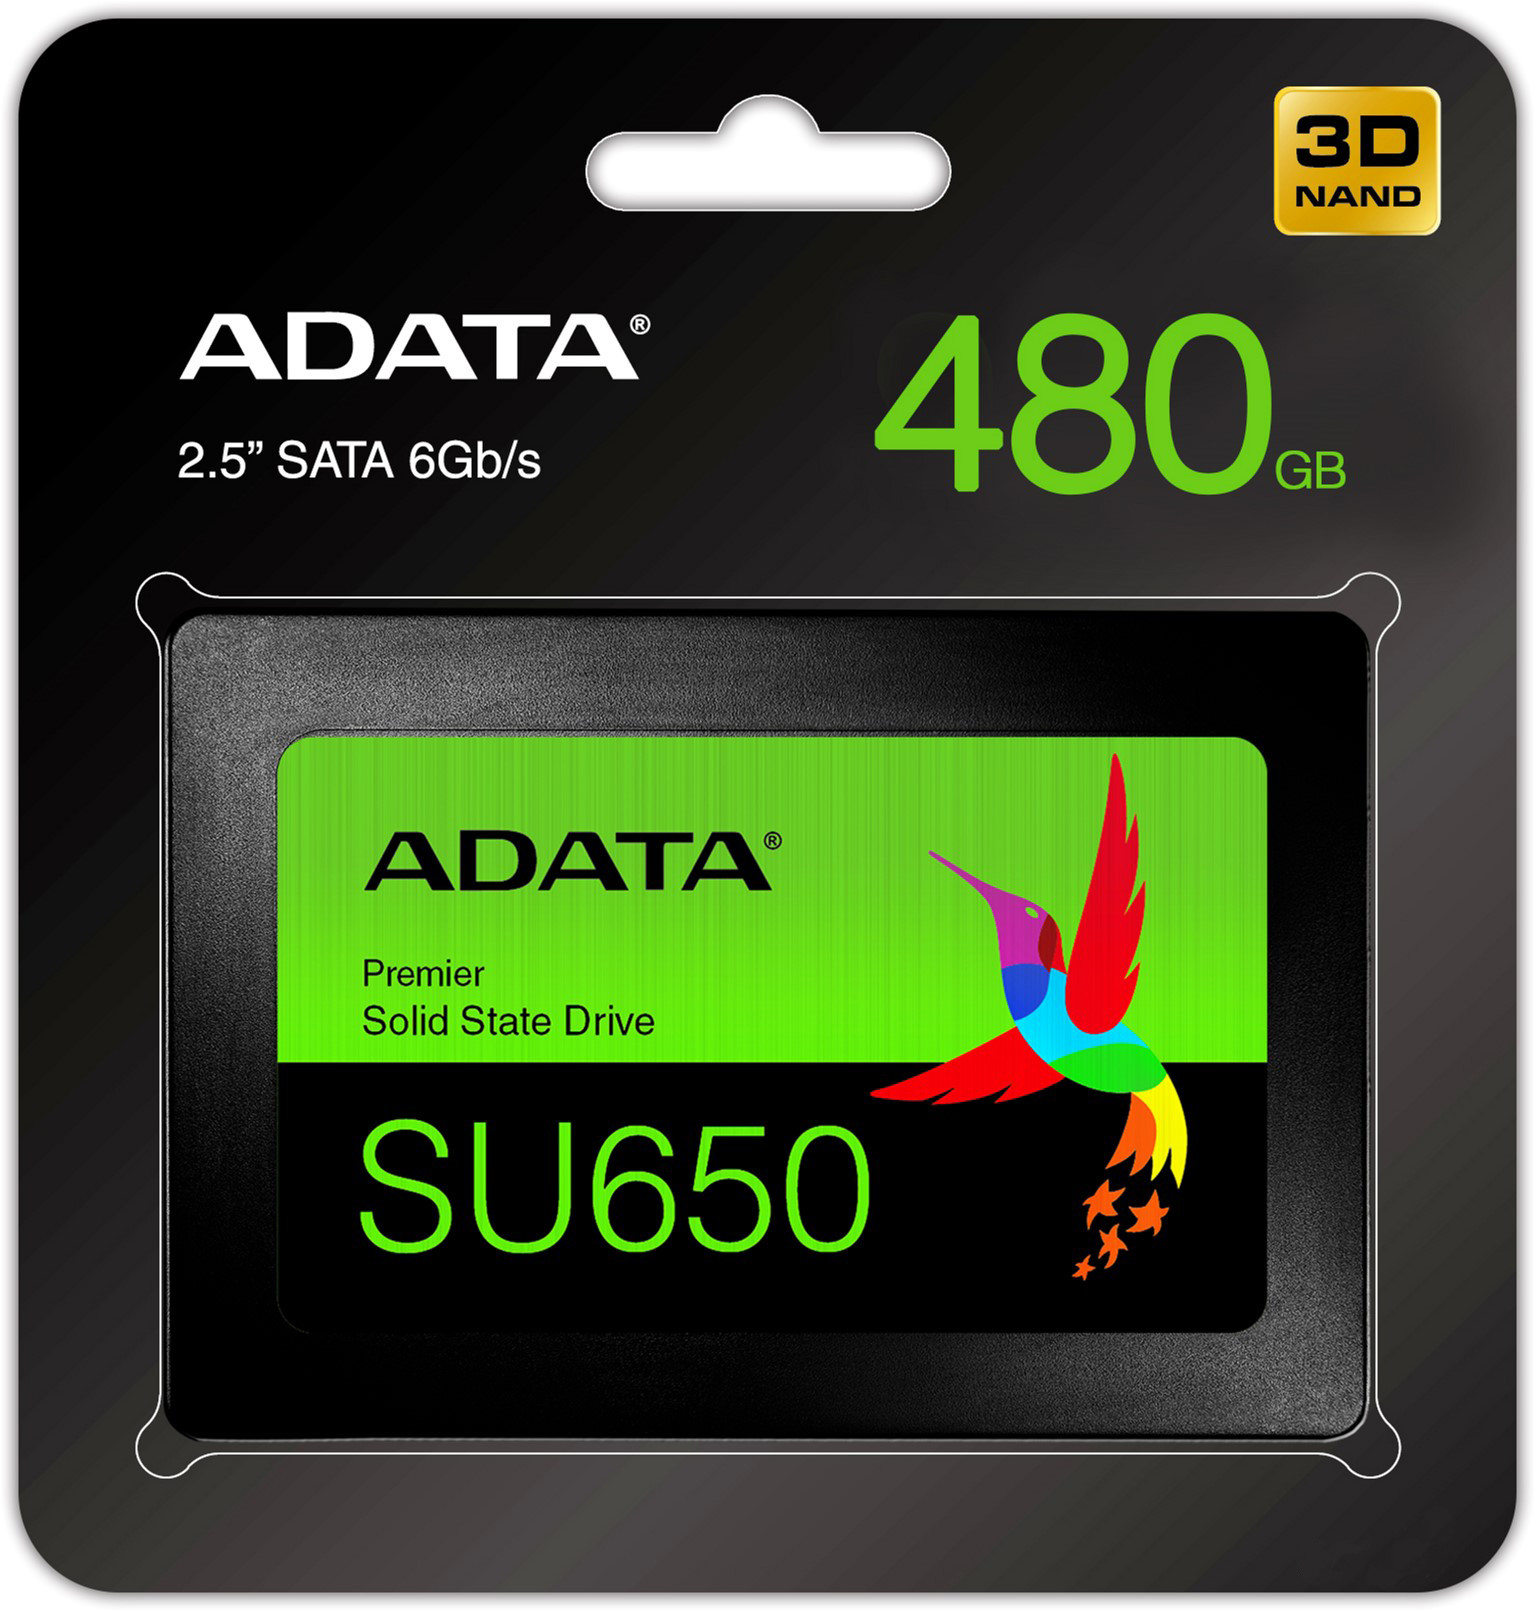 Disco solido Adata de 480GB